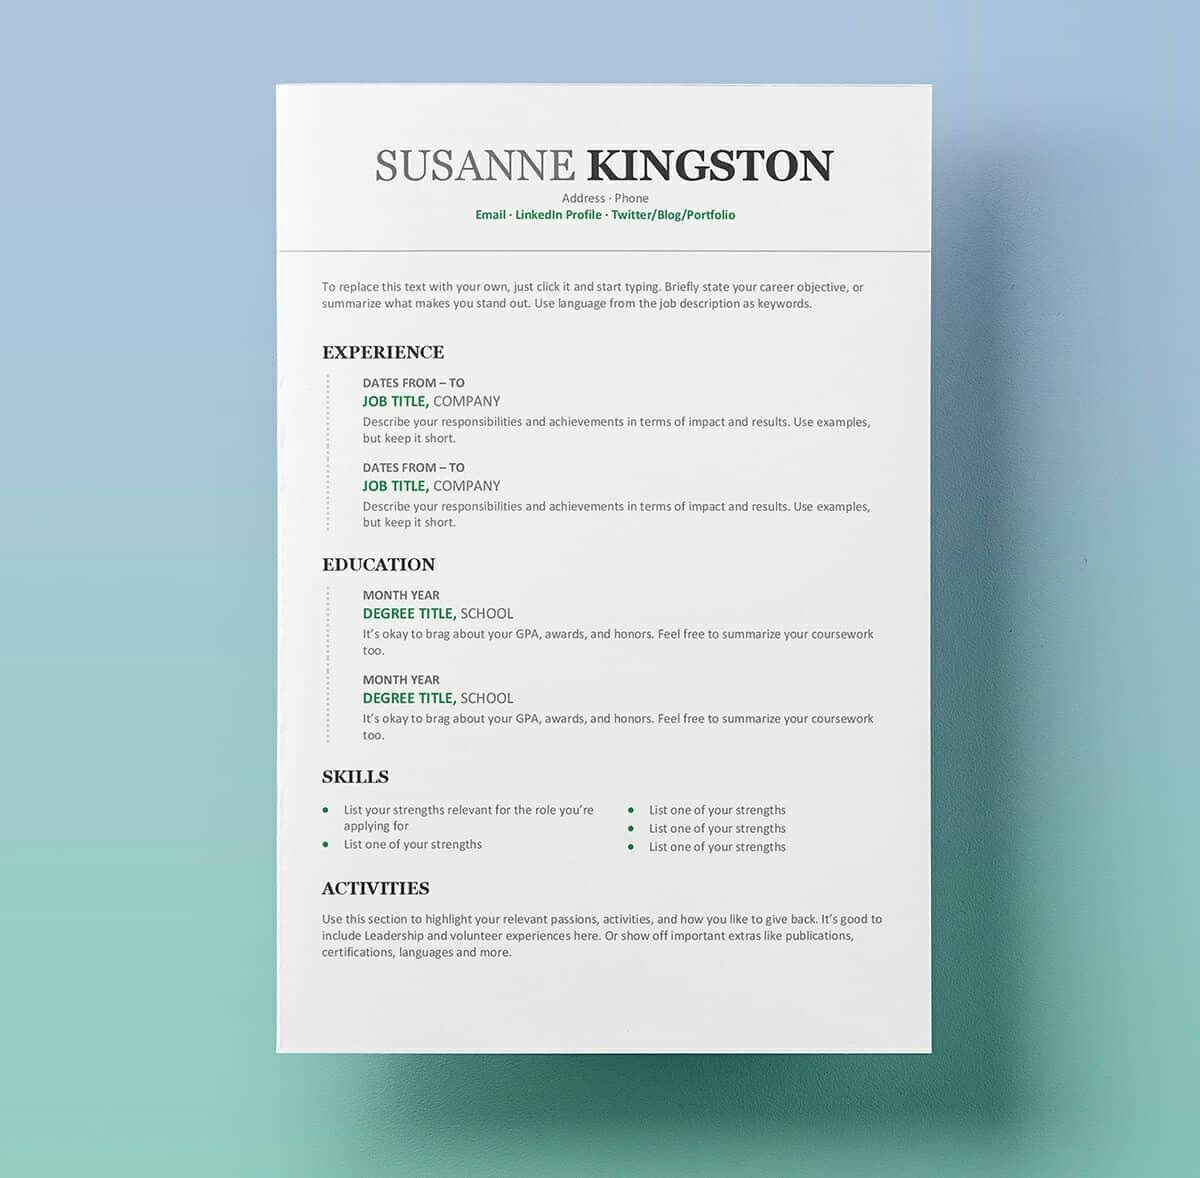 009 Exceptional Cv Template Free Download Word Doc Image  Editable Document For Fresher Student EngineerFull